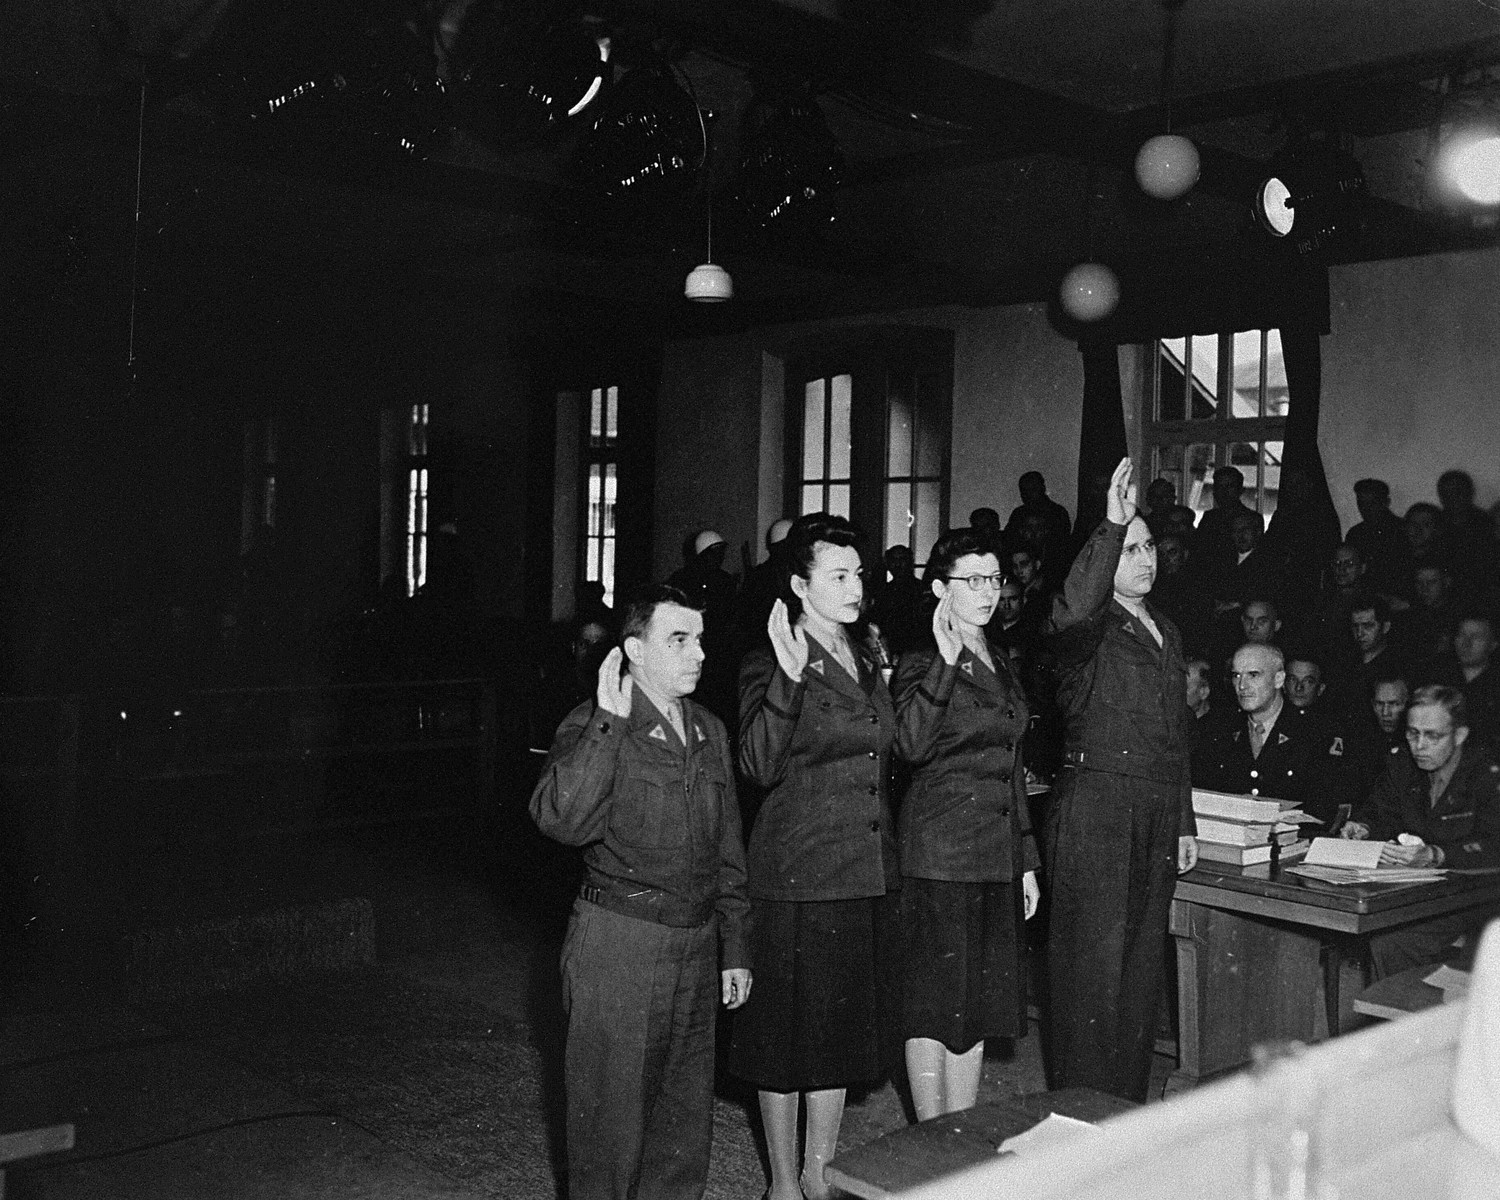 Four people (probably American court personnel) are sworn in at the trial of 61 former camp personnel and prisoners from Mauthausen.